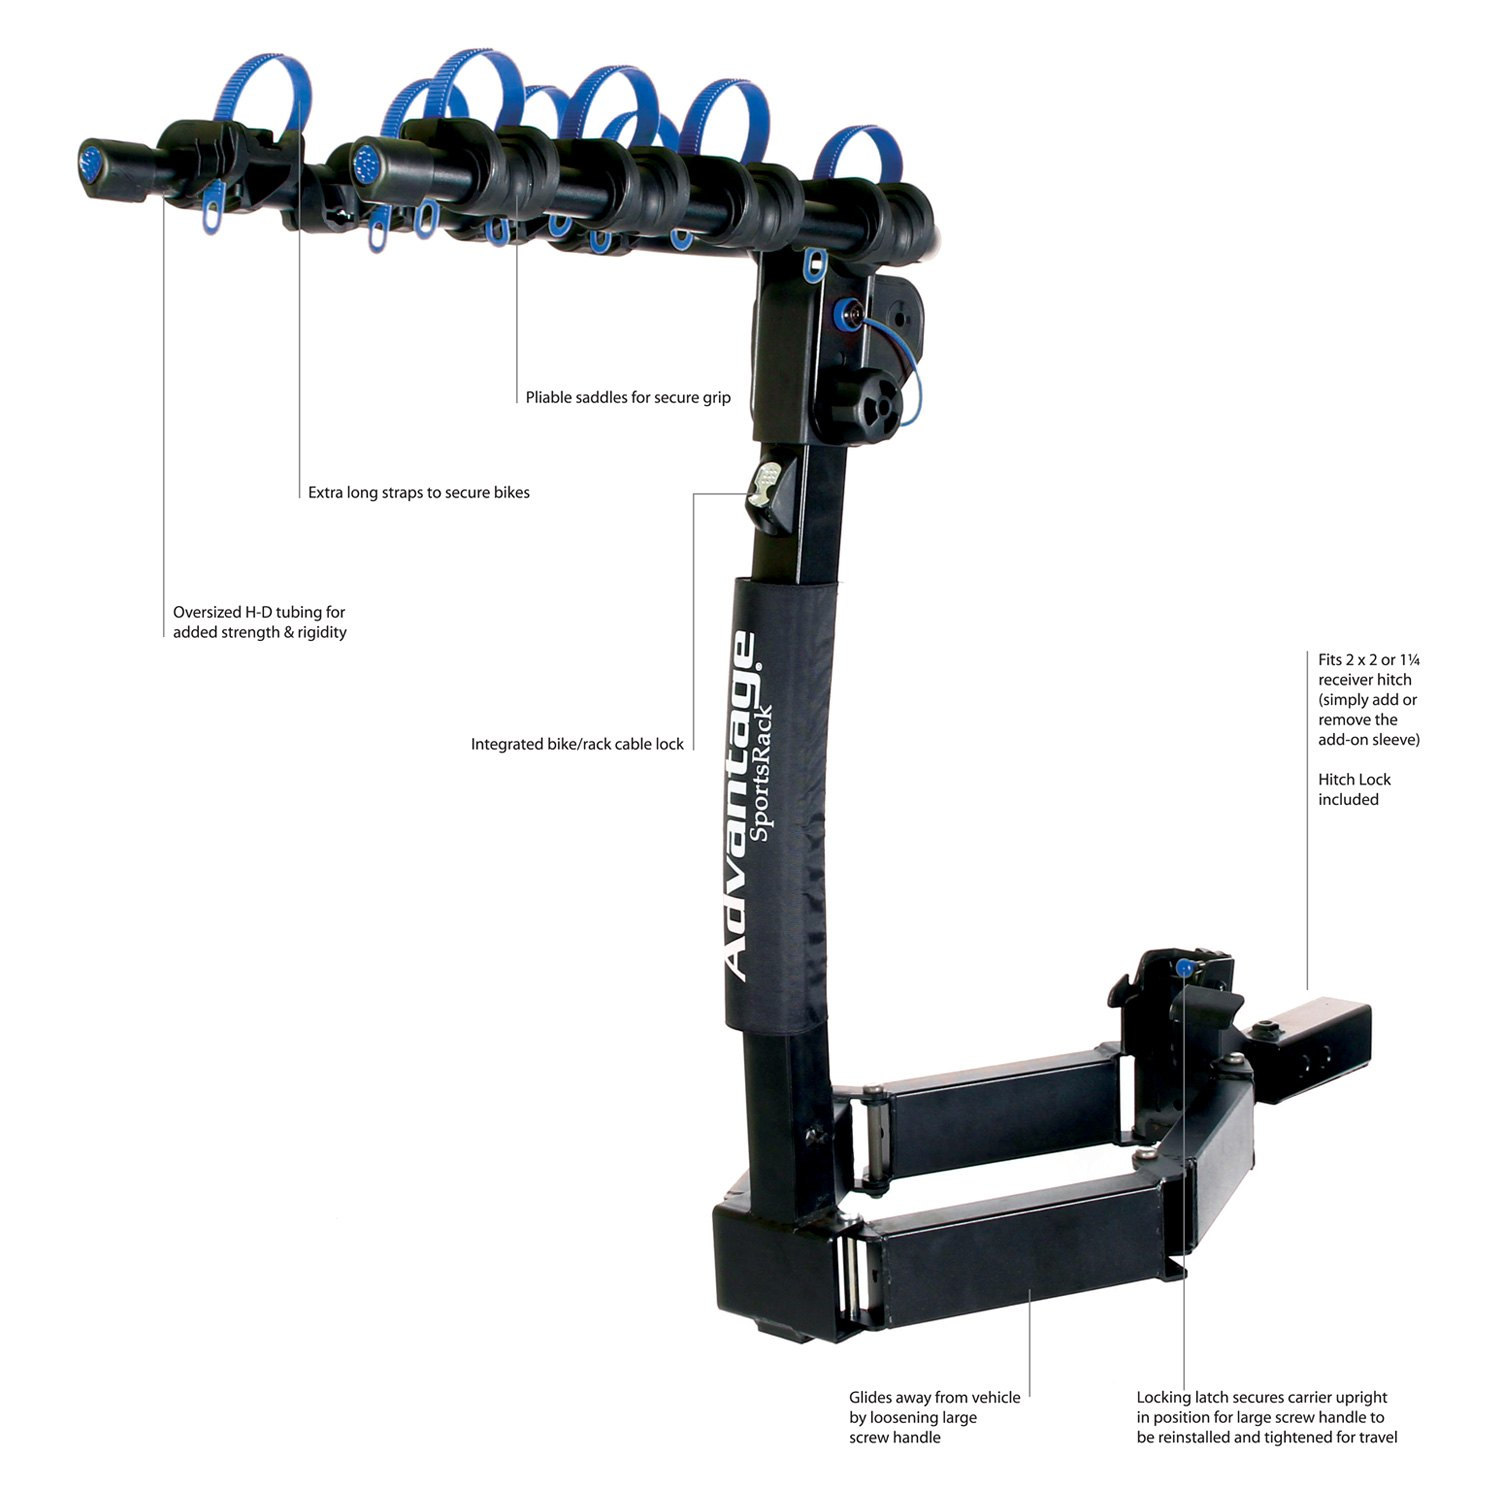 bicycle resource hitch car freedom ex rack saris rear carrier mount itm bike superclamp